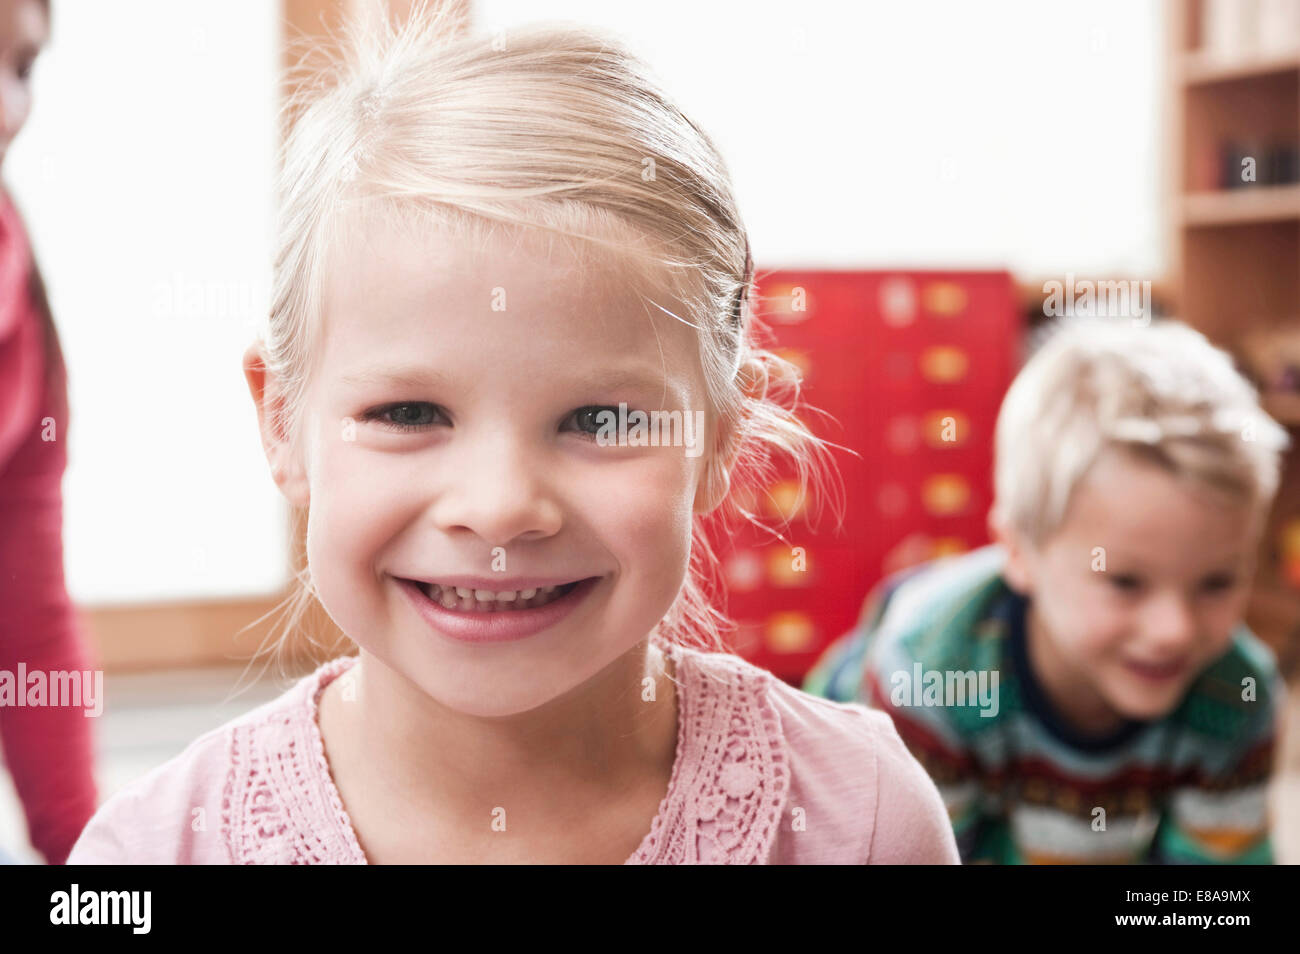 Portrait of smiling little girl in kindergarten - Stock Image